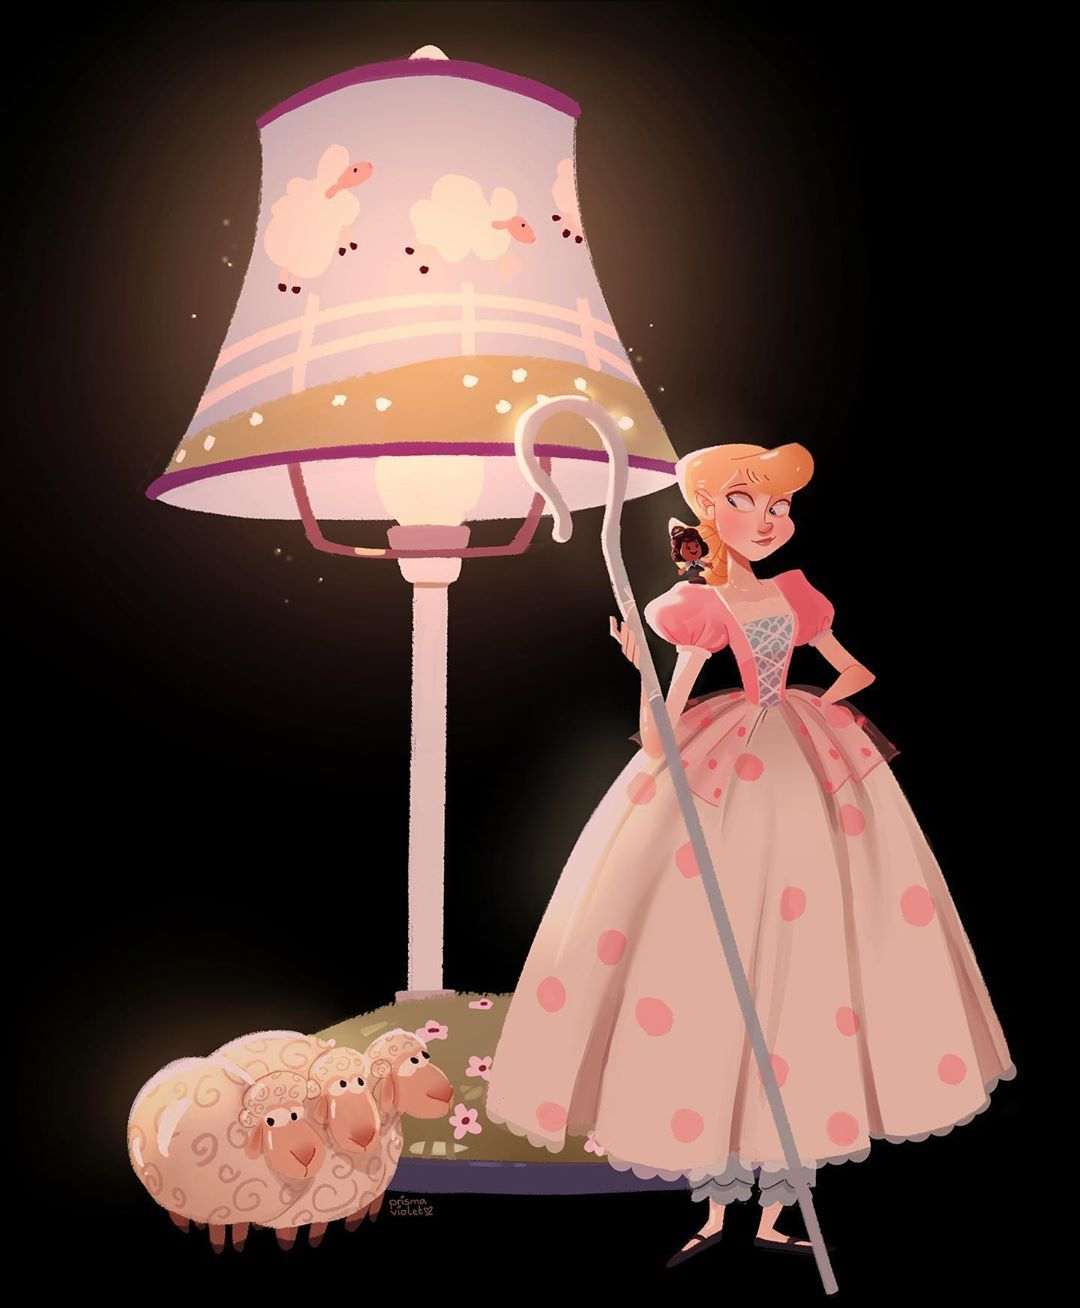 Brittney On Instagram Okok I M Really Excited For The Lamp Life Short Film Later This Month It Looks L In 2020 Bo Peep Toy Story Disney Fun Disney And Dreamworks